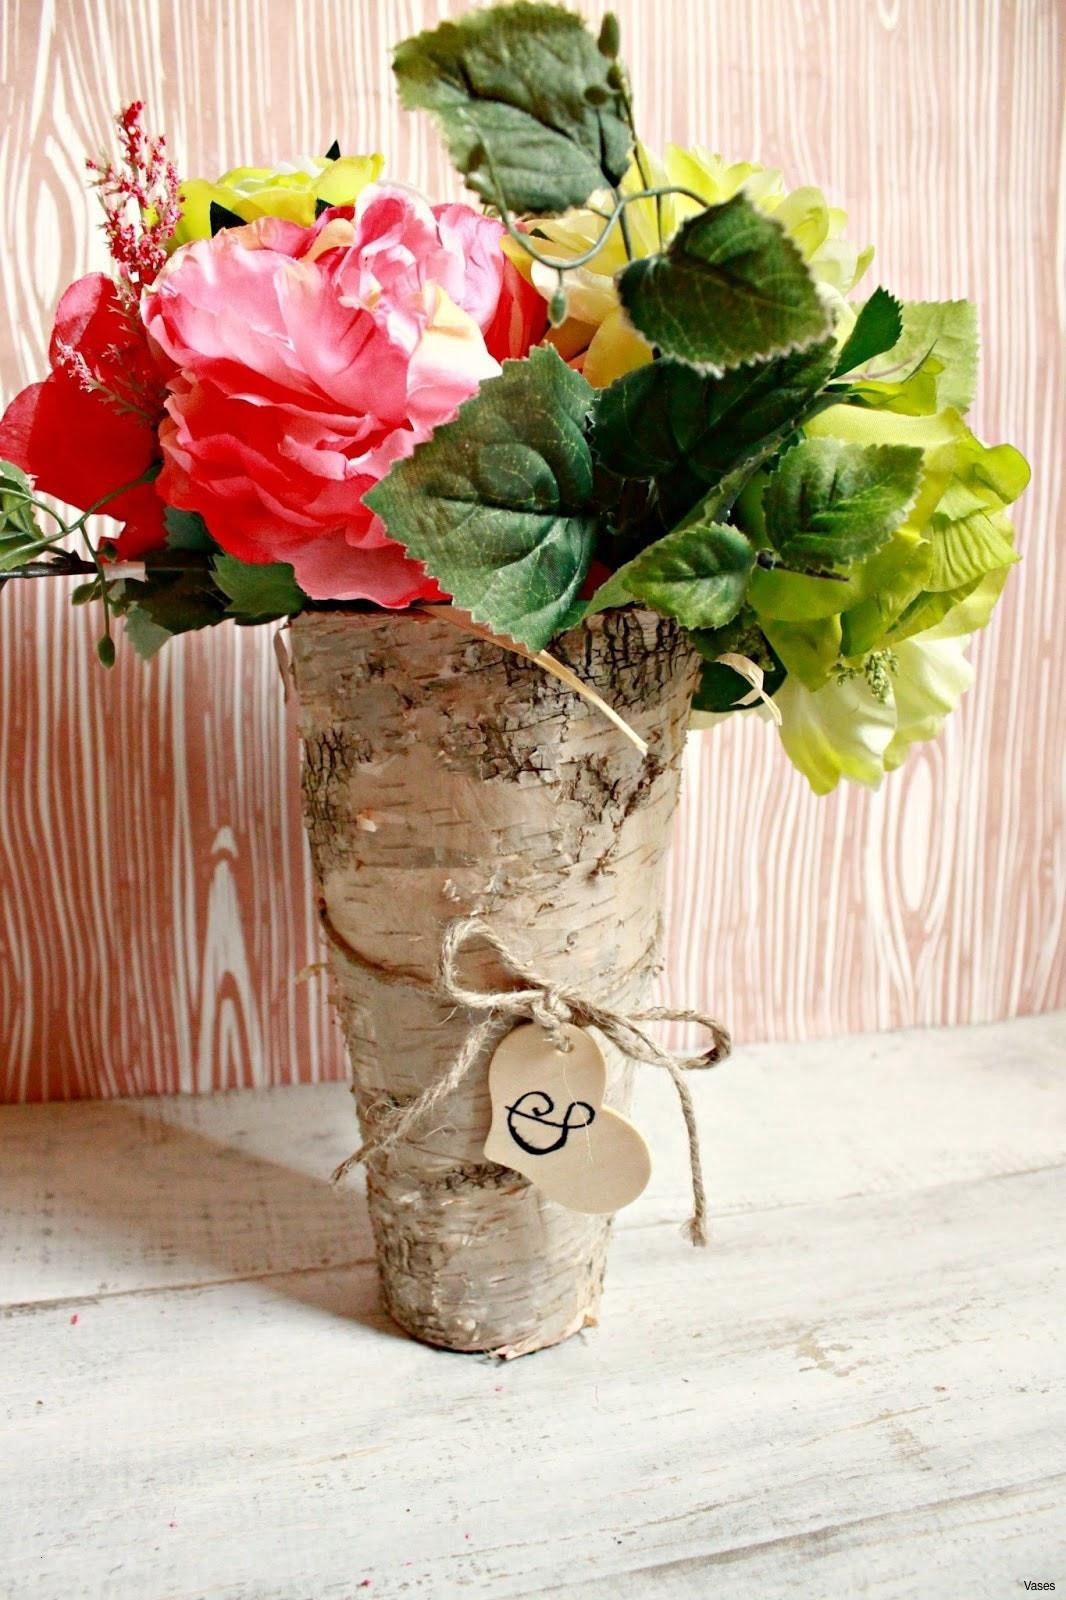 Hand Turned Wooden Vases Of Find the Best Photo On Wood Diy Trends Economyinnbeebe Com within Photo On Wood Diy New Simple Wedding Decorations Awesome Flowers and Decorations for